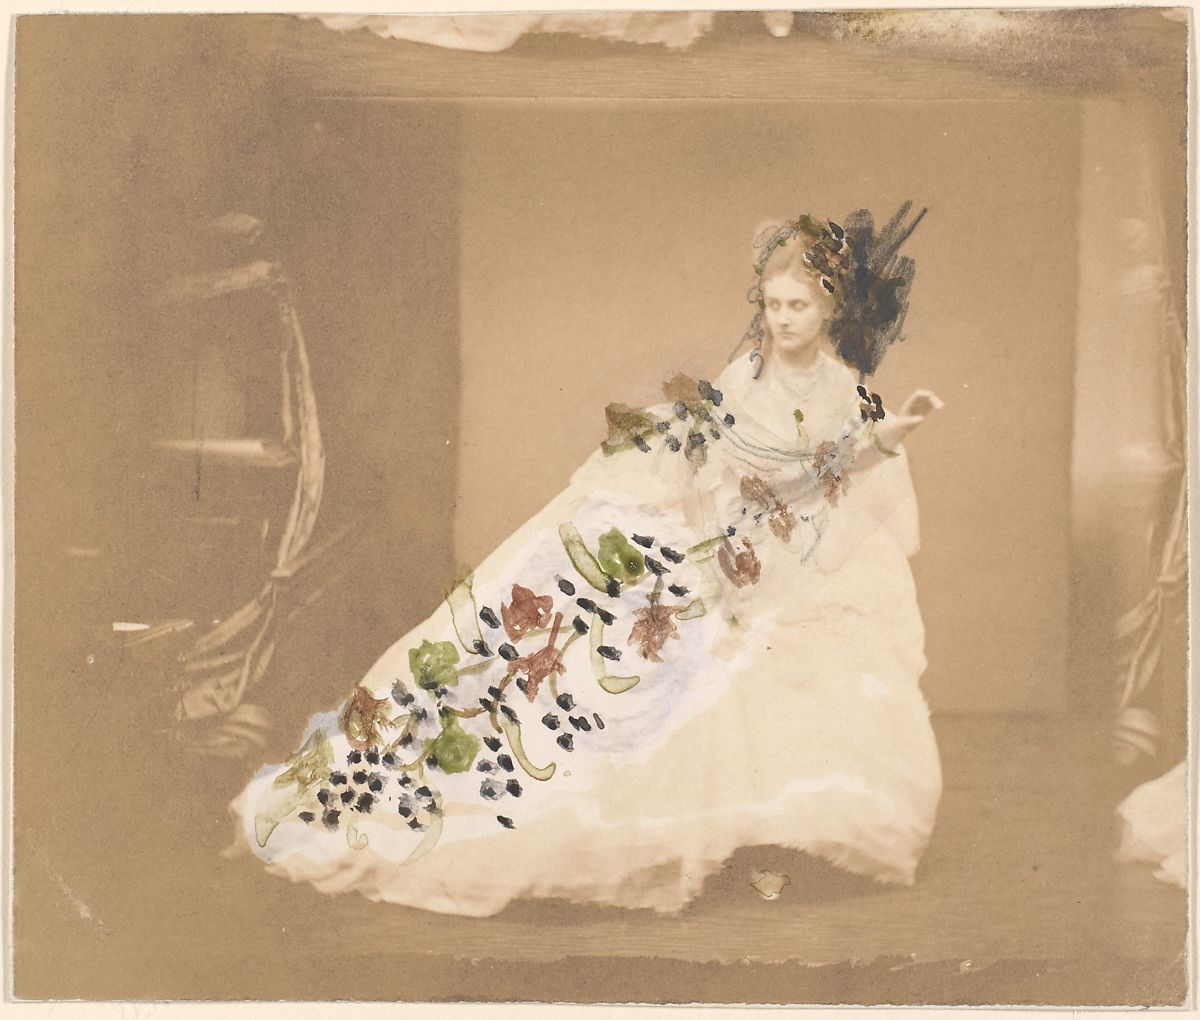 This photograph was retouched by the countess with instructions (on the back) suggesting that the composition was intended to set off her elegant attitude and majestic gown: